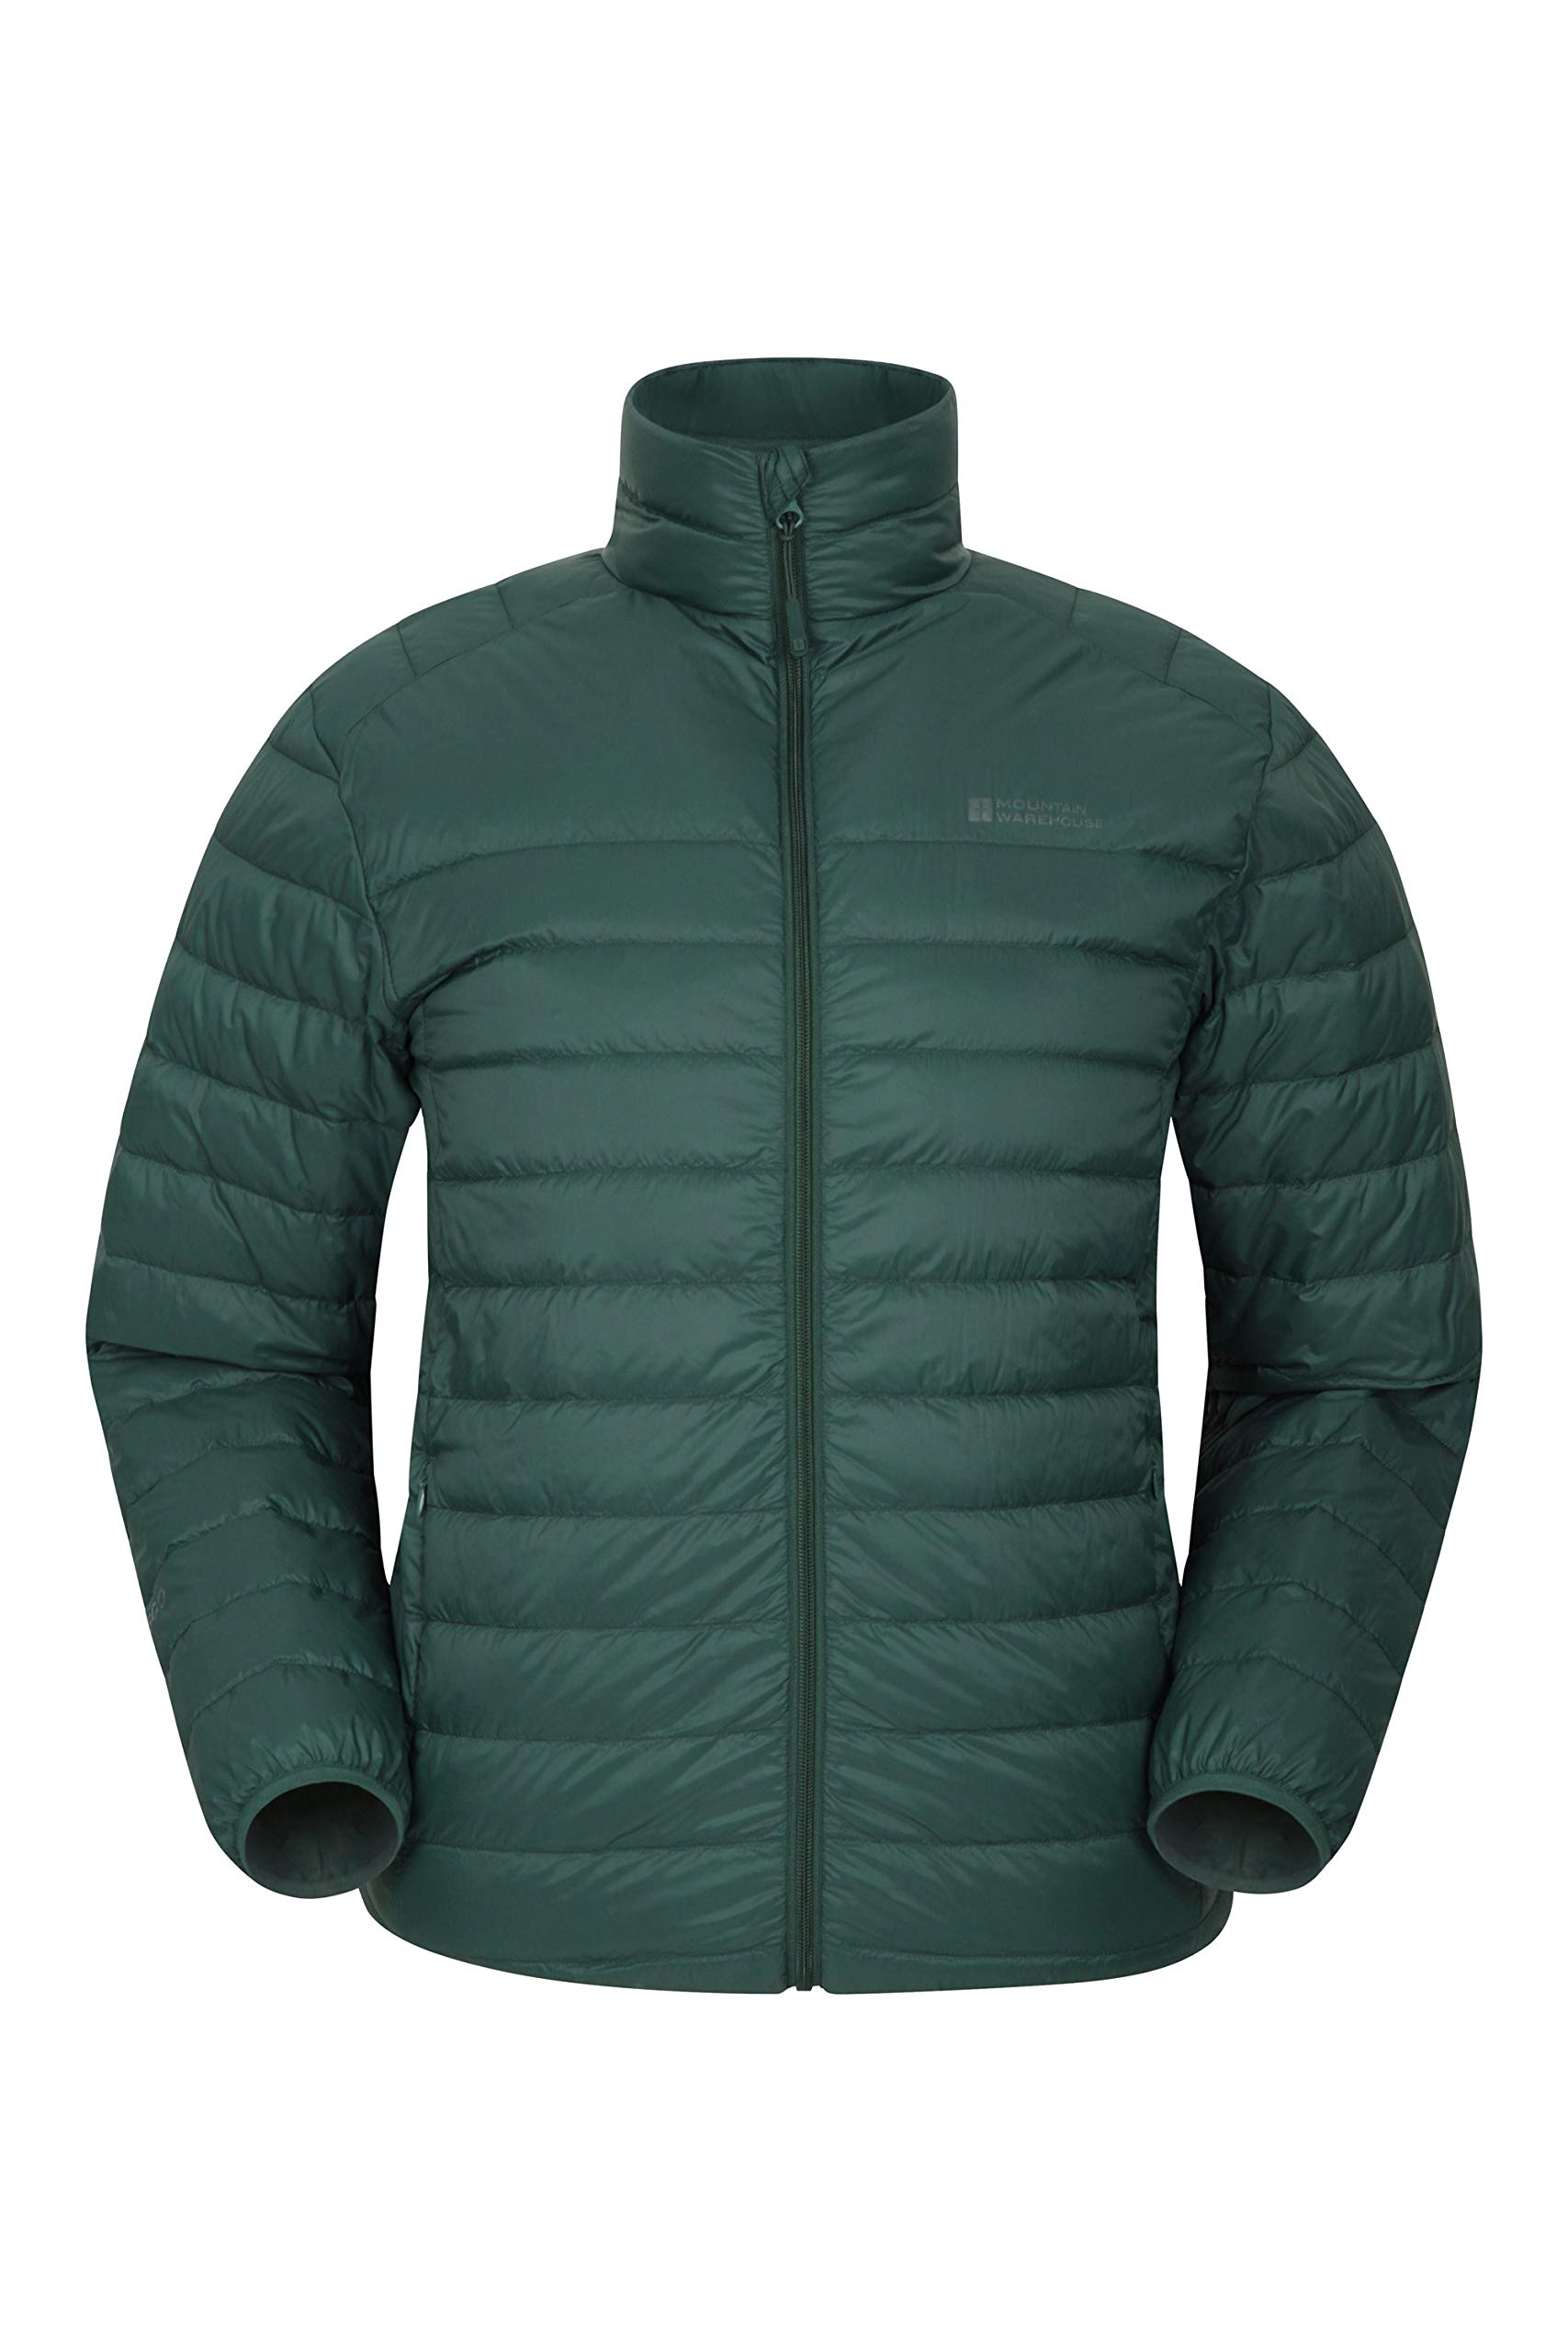 Mountain Warehouse Featherweight Mens Jacket